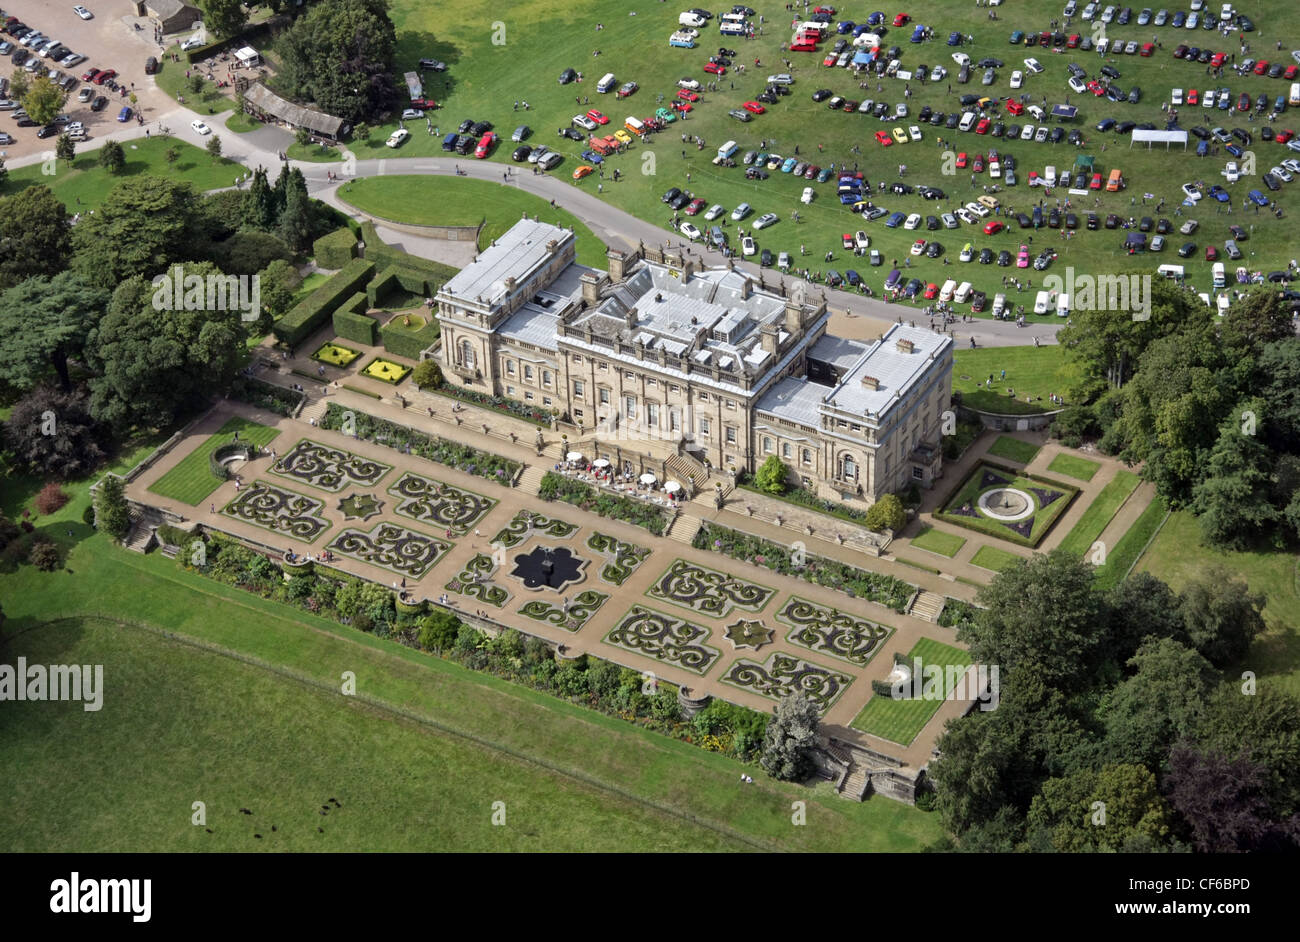 Aerial view of harewood house near leeds stock photo for See images of my house